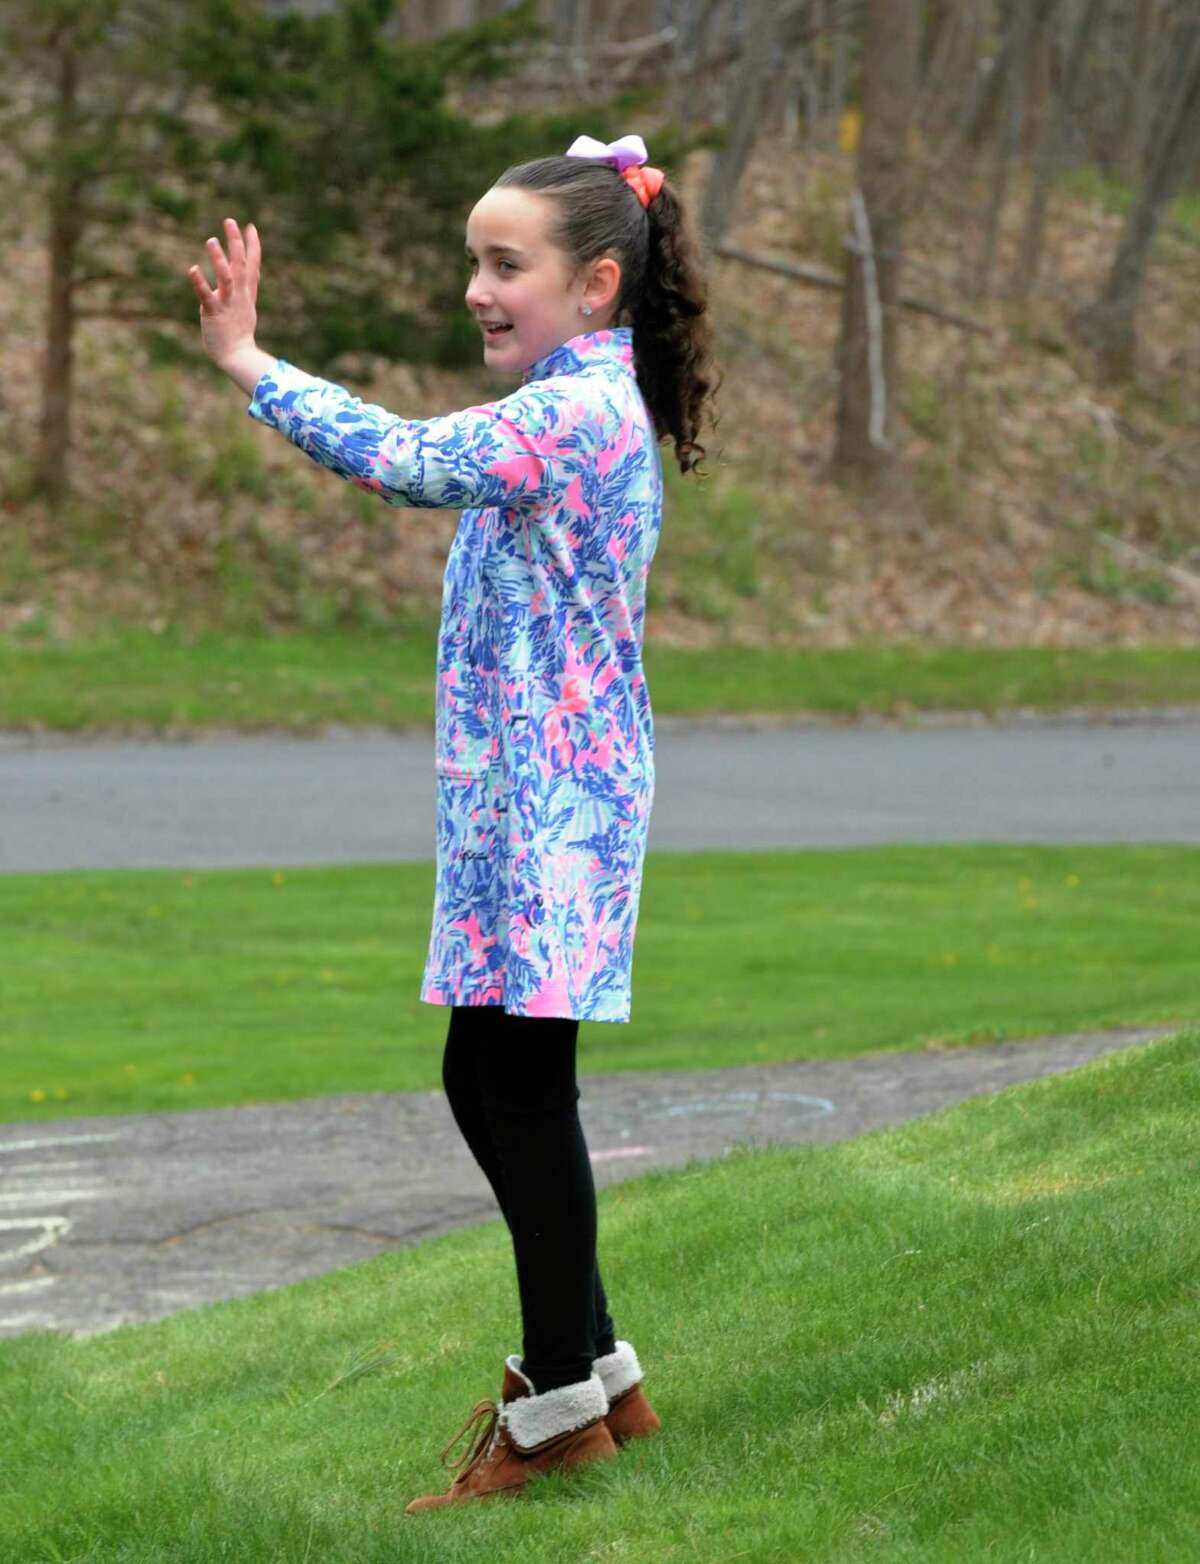 Aubrey Lewis got a parade of fire trucks, police cars and family friends past her house to help her celebrate turning 10. Thursday, April 23, 2020, in Bethel, Conn. The Stony Hill Fire Department is helping kids celebrate their birthdays during the coronavirus isolation.